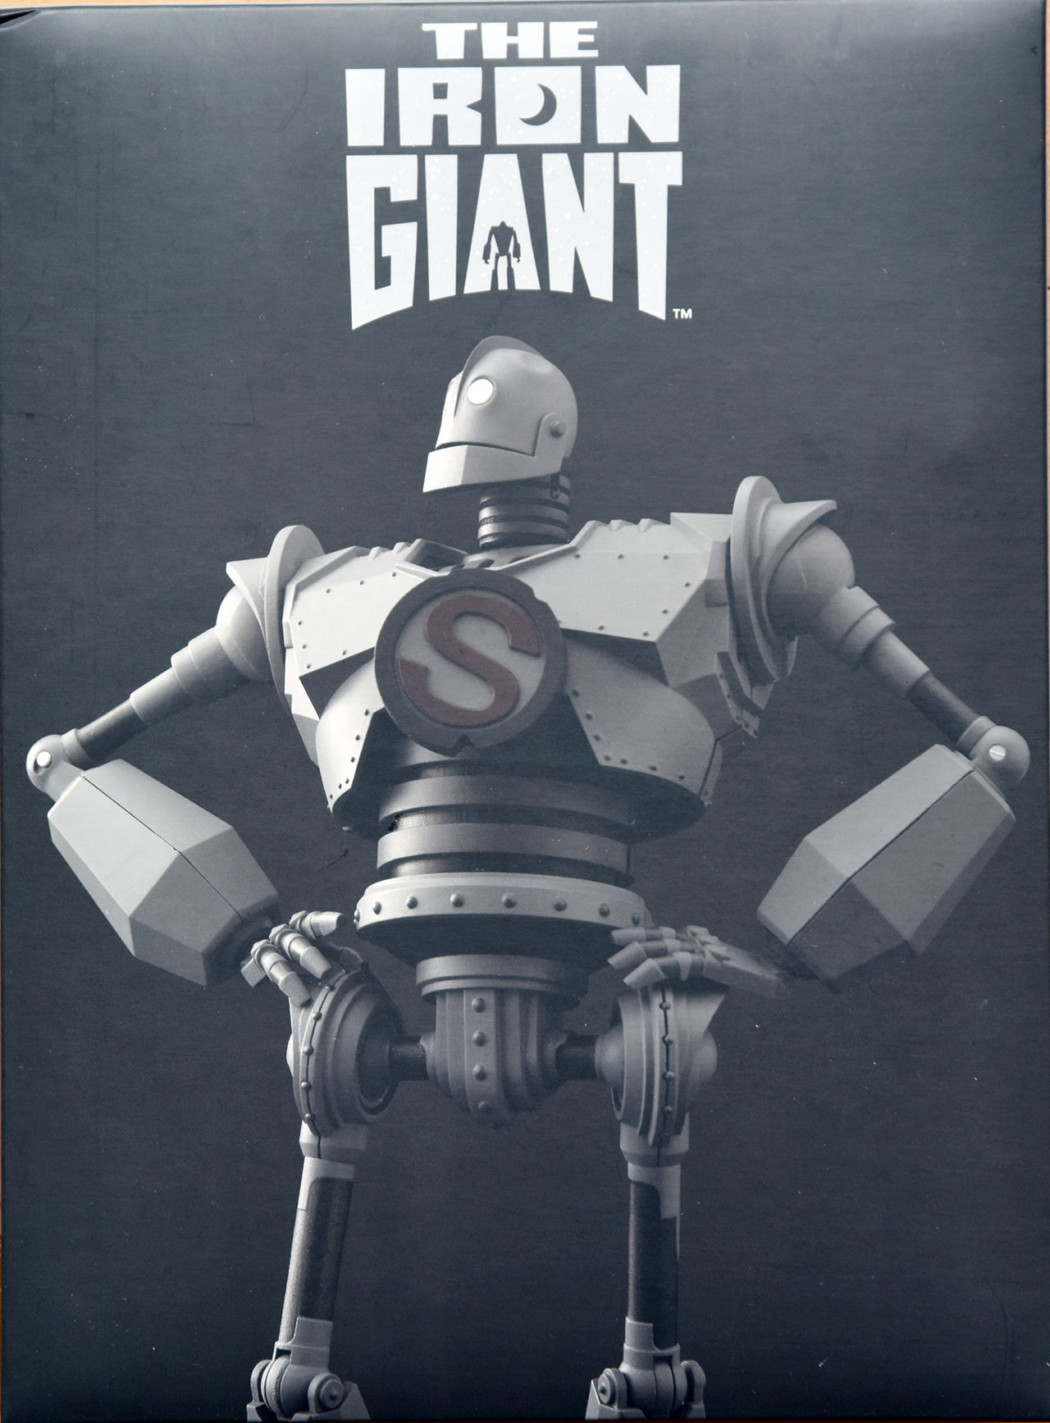 Riobot The Iron Giant by Sentinel (Part 1: Unbox)